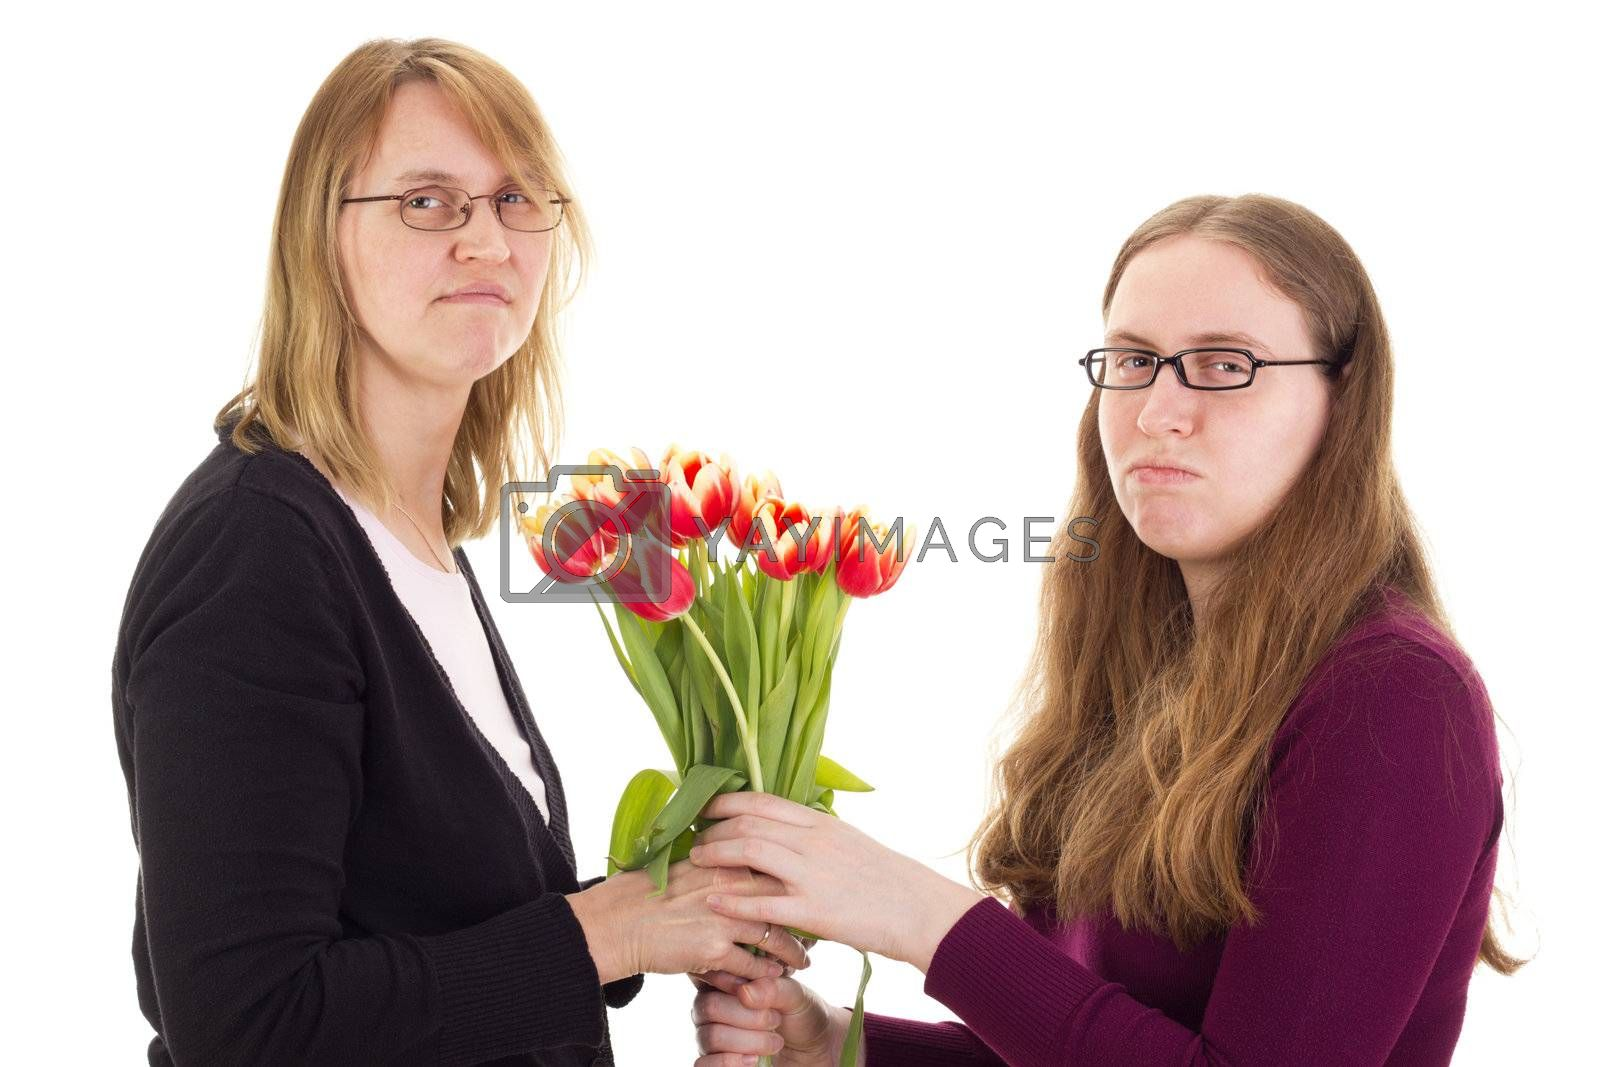 Women quarreling over tulips by gwolters